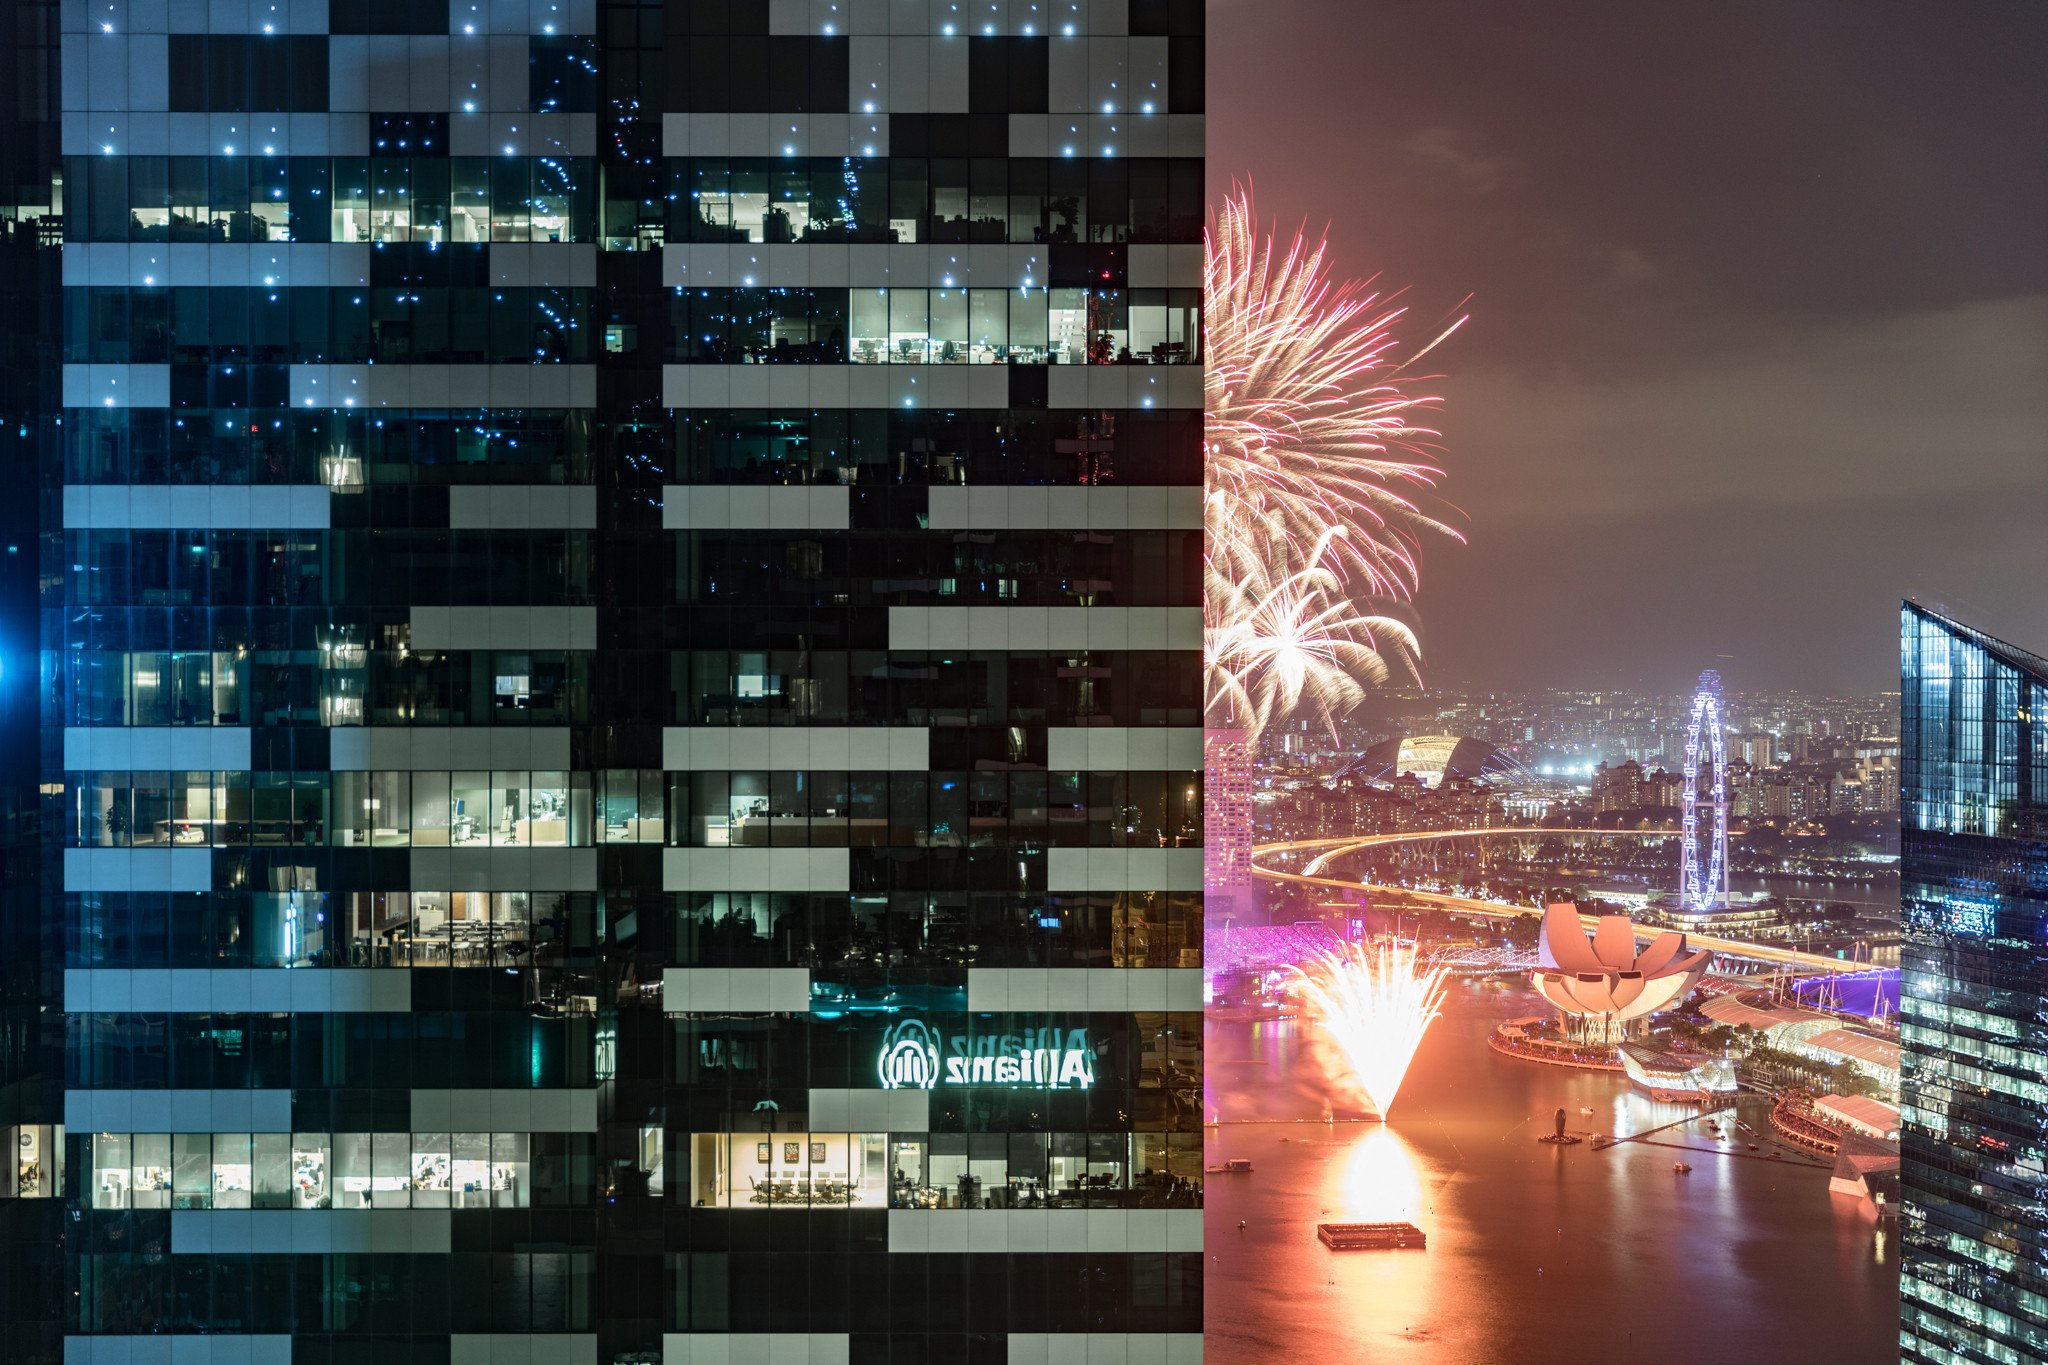 Coincidentally it was the NDP rehearsal so we were able to catch part of the fireworks from our bayview room.